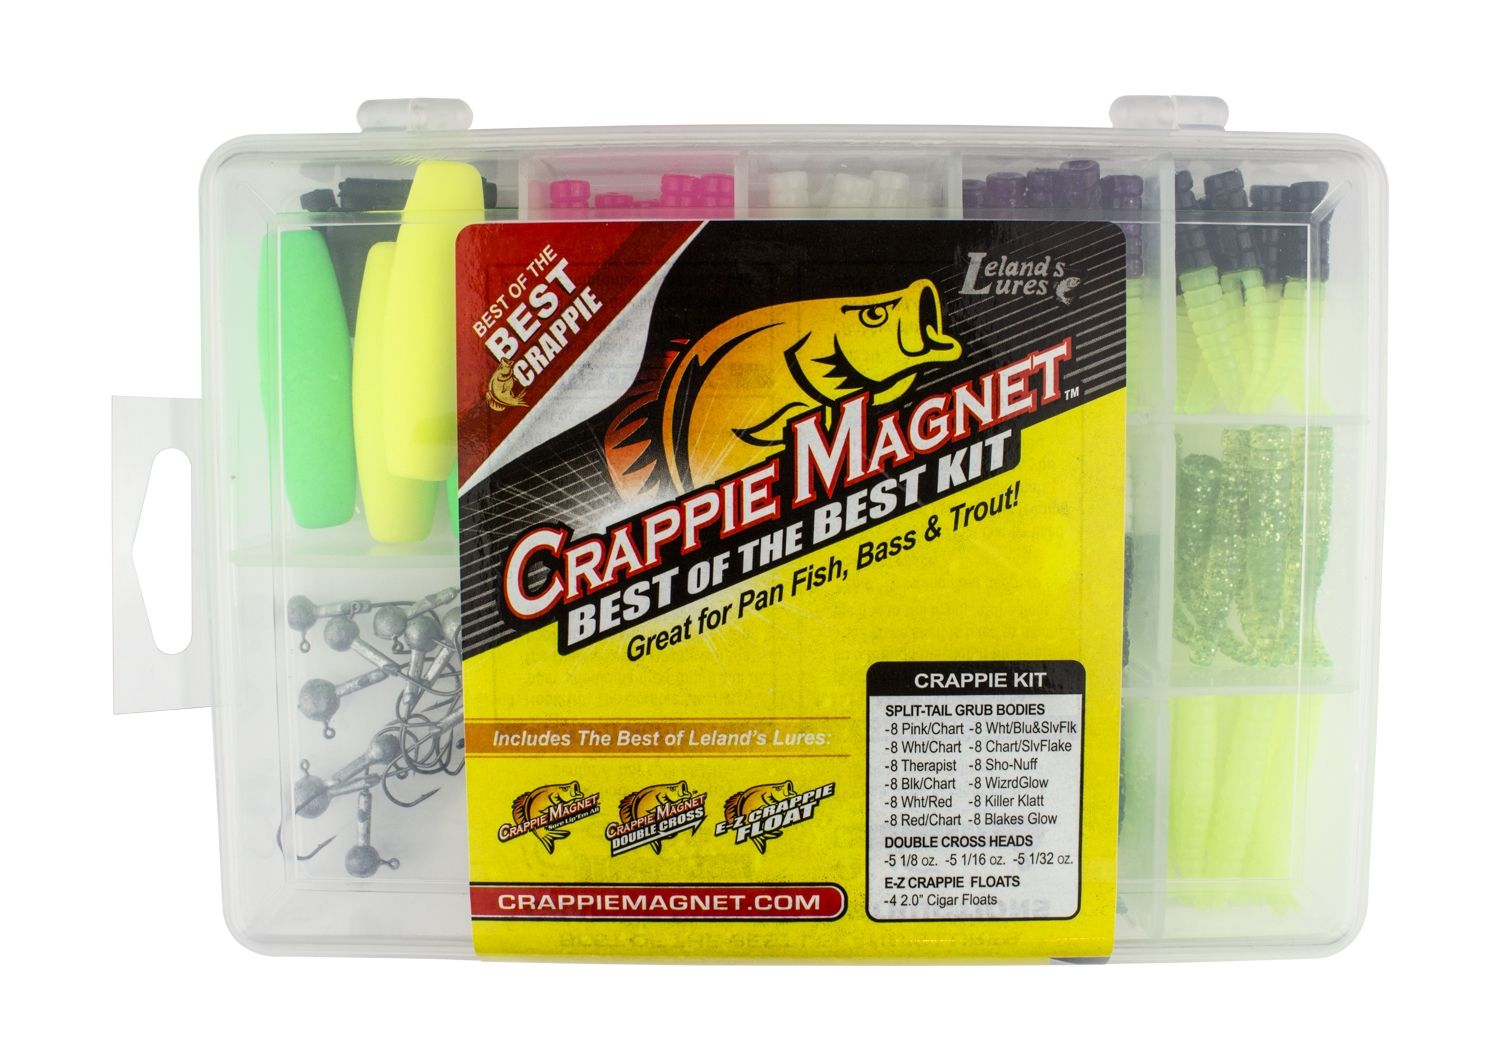 Crappie Magnet Best of The Best Kit